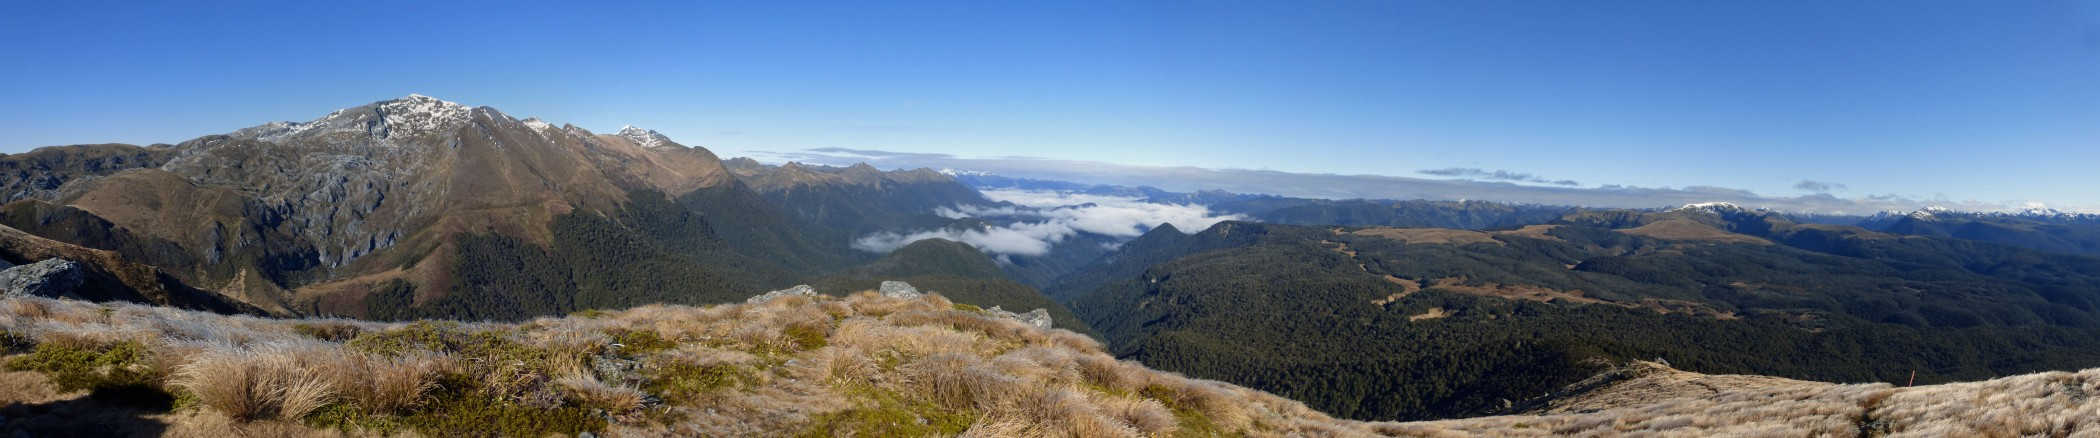 Panarama with Mt Arthur on the left , the Leslie valley in the middle and the Peel, Lockett and Snowden ranges in the distance on the right